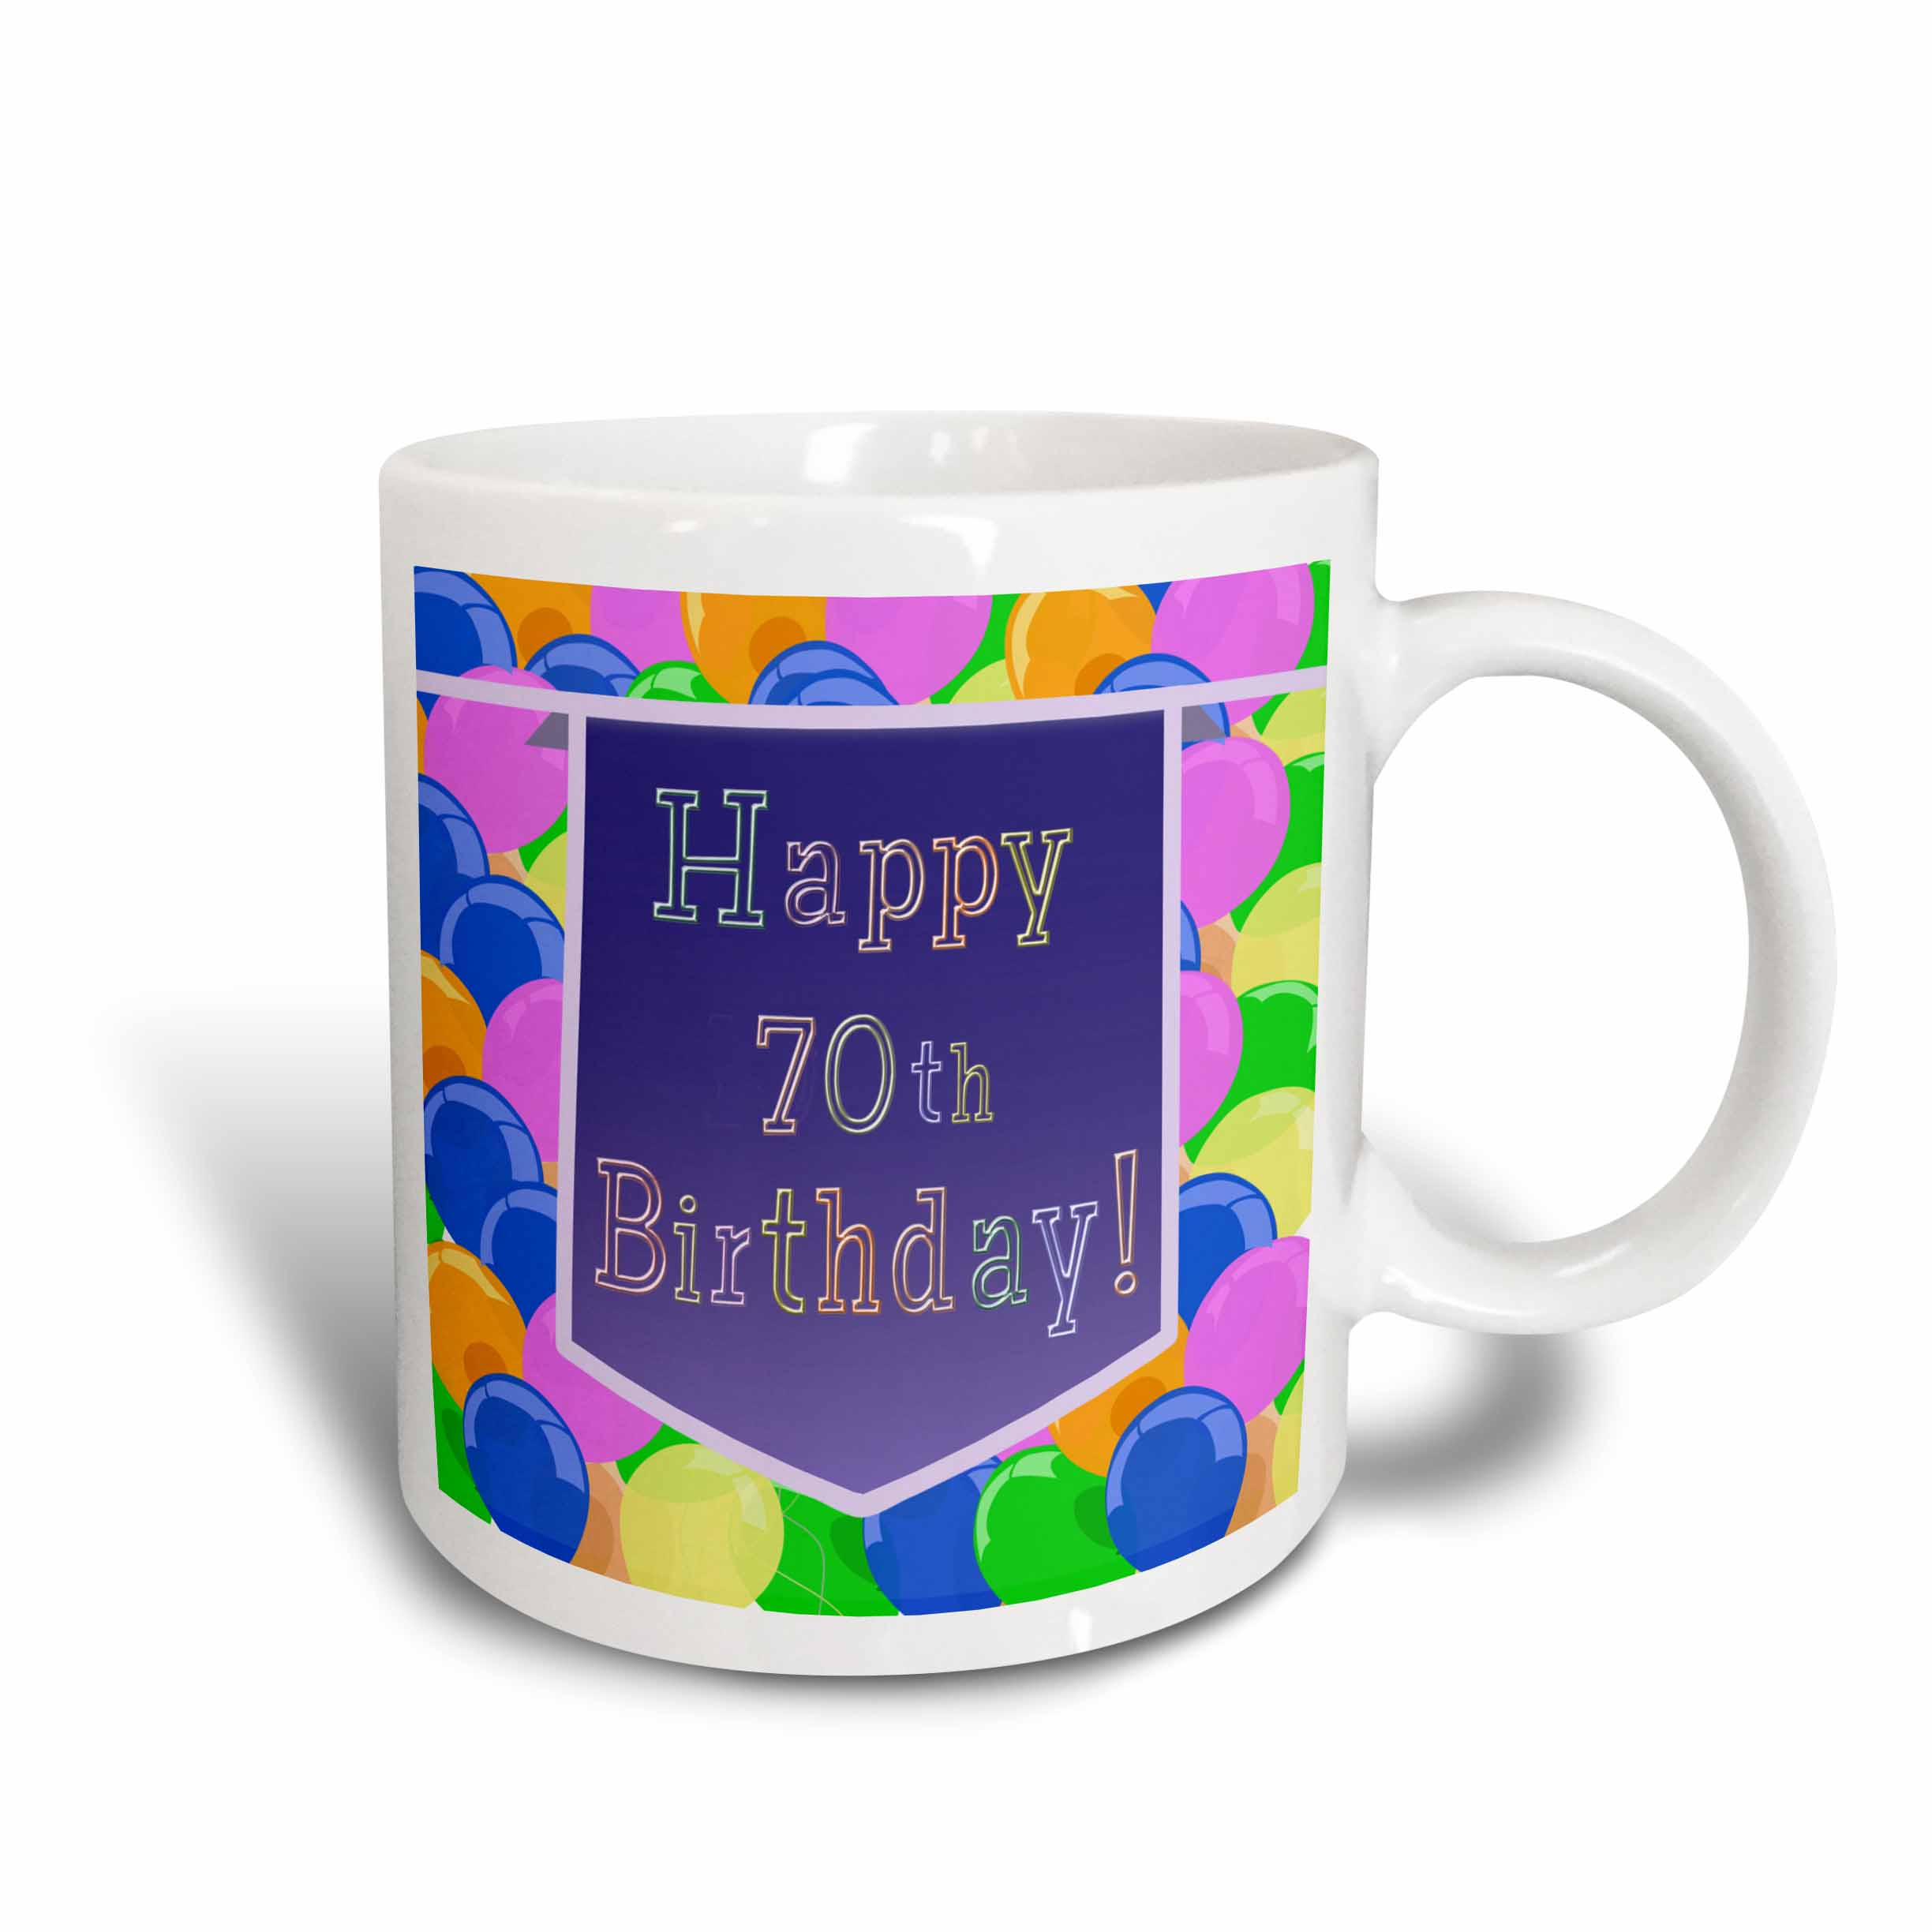 3dRose Balloons with Purple Banner Happy 70th Birthday, Ceramic Mug, 15-ounce